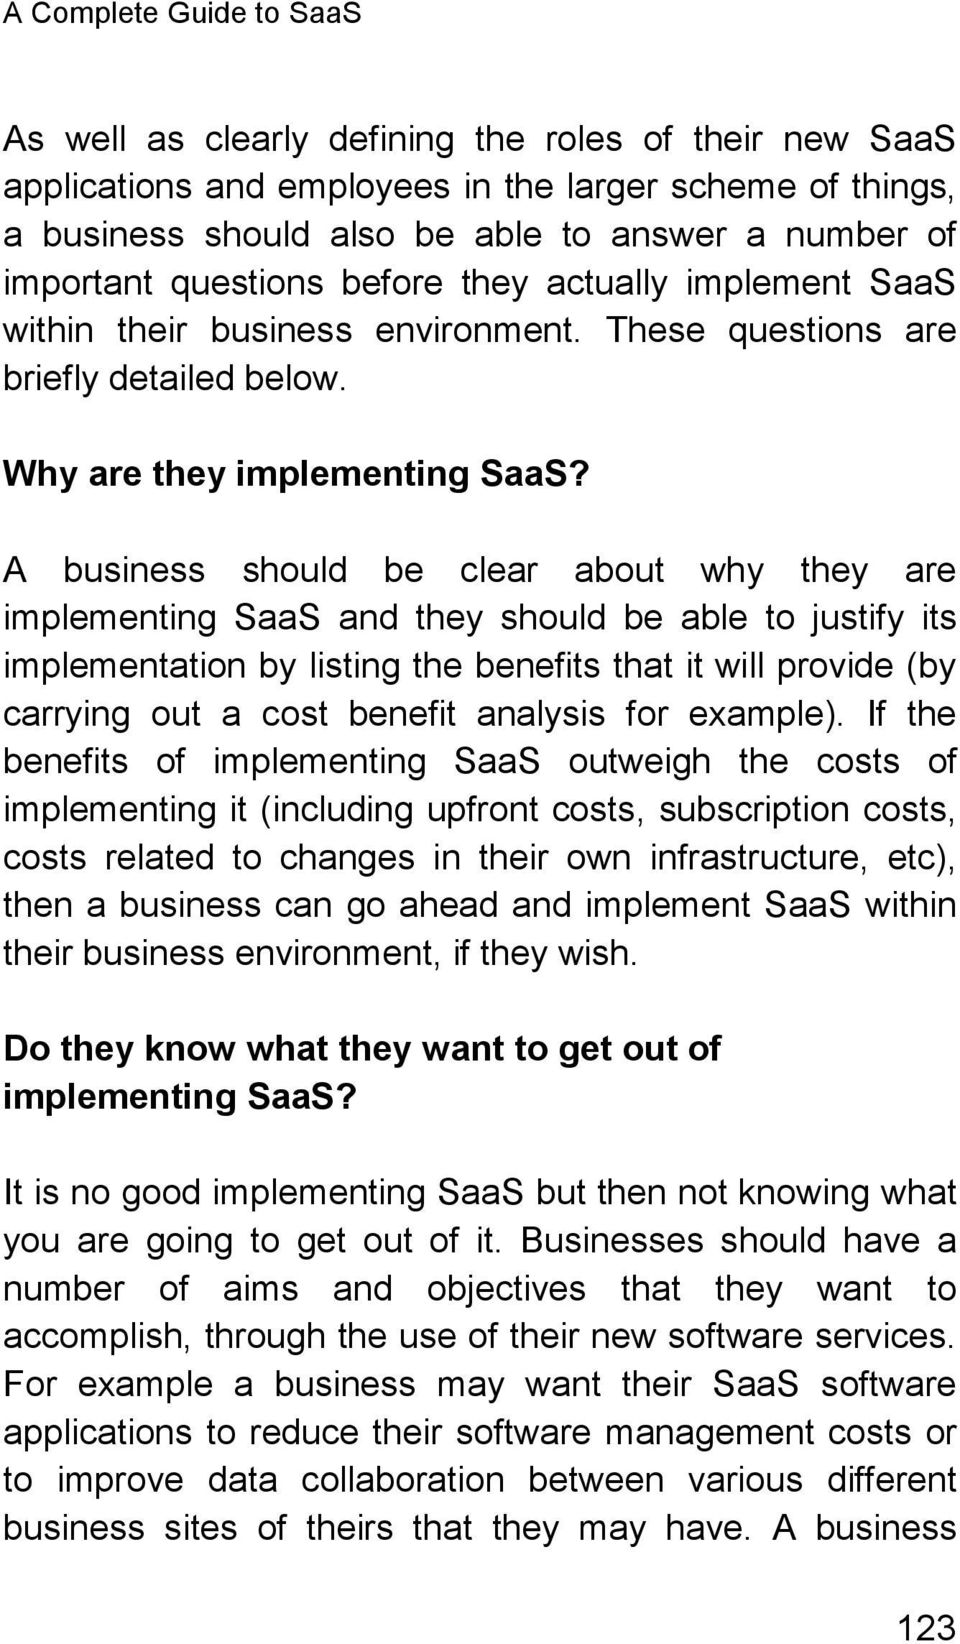 A business should be clear about why they are implementing SaaS and they should be able to justify its implementation by listing the benefits that it will provide (by carrying out a cost benefit